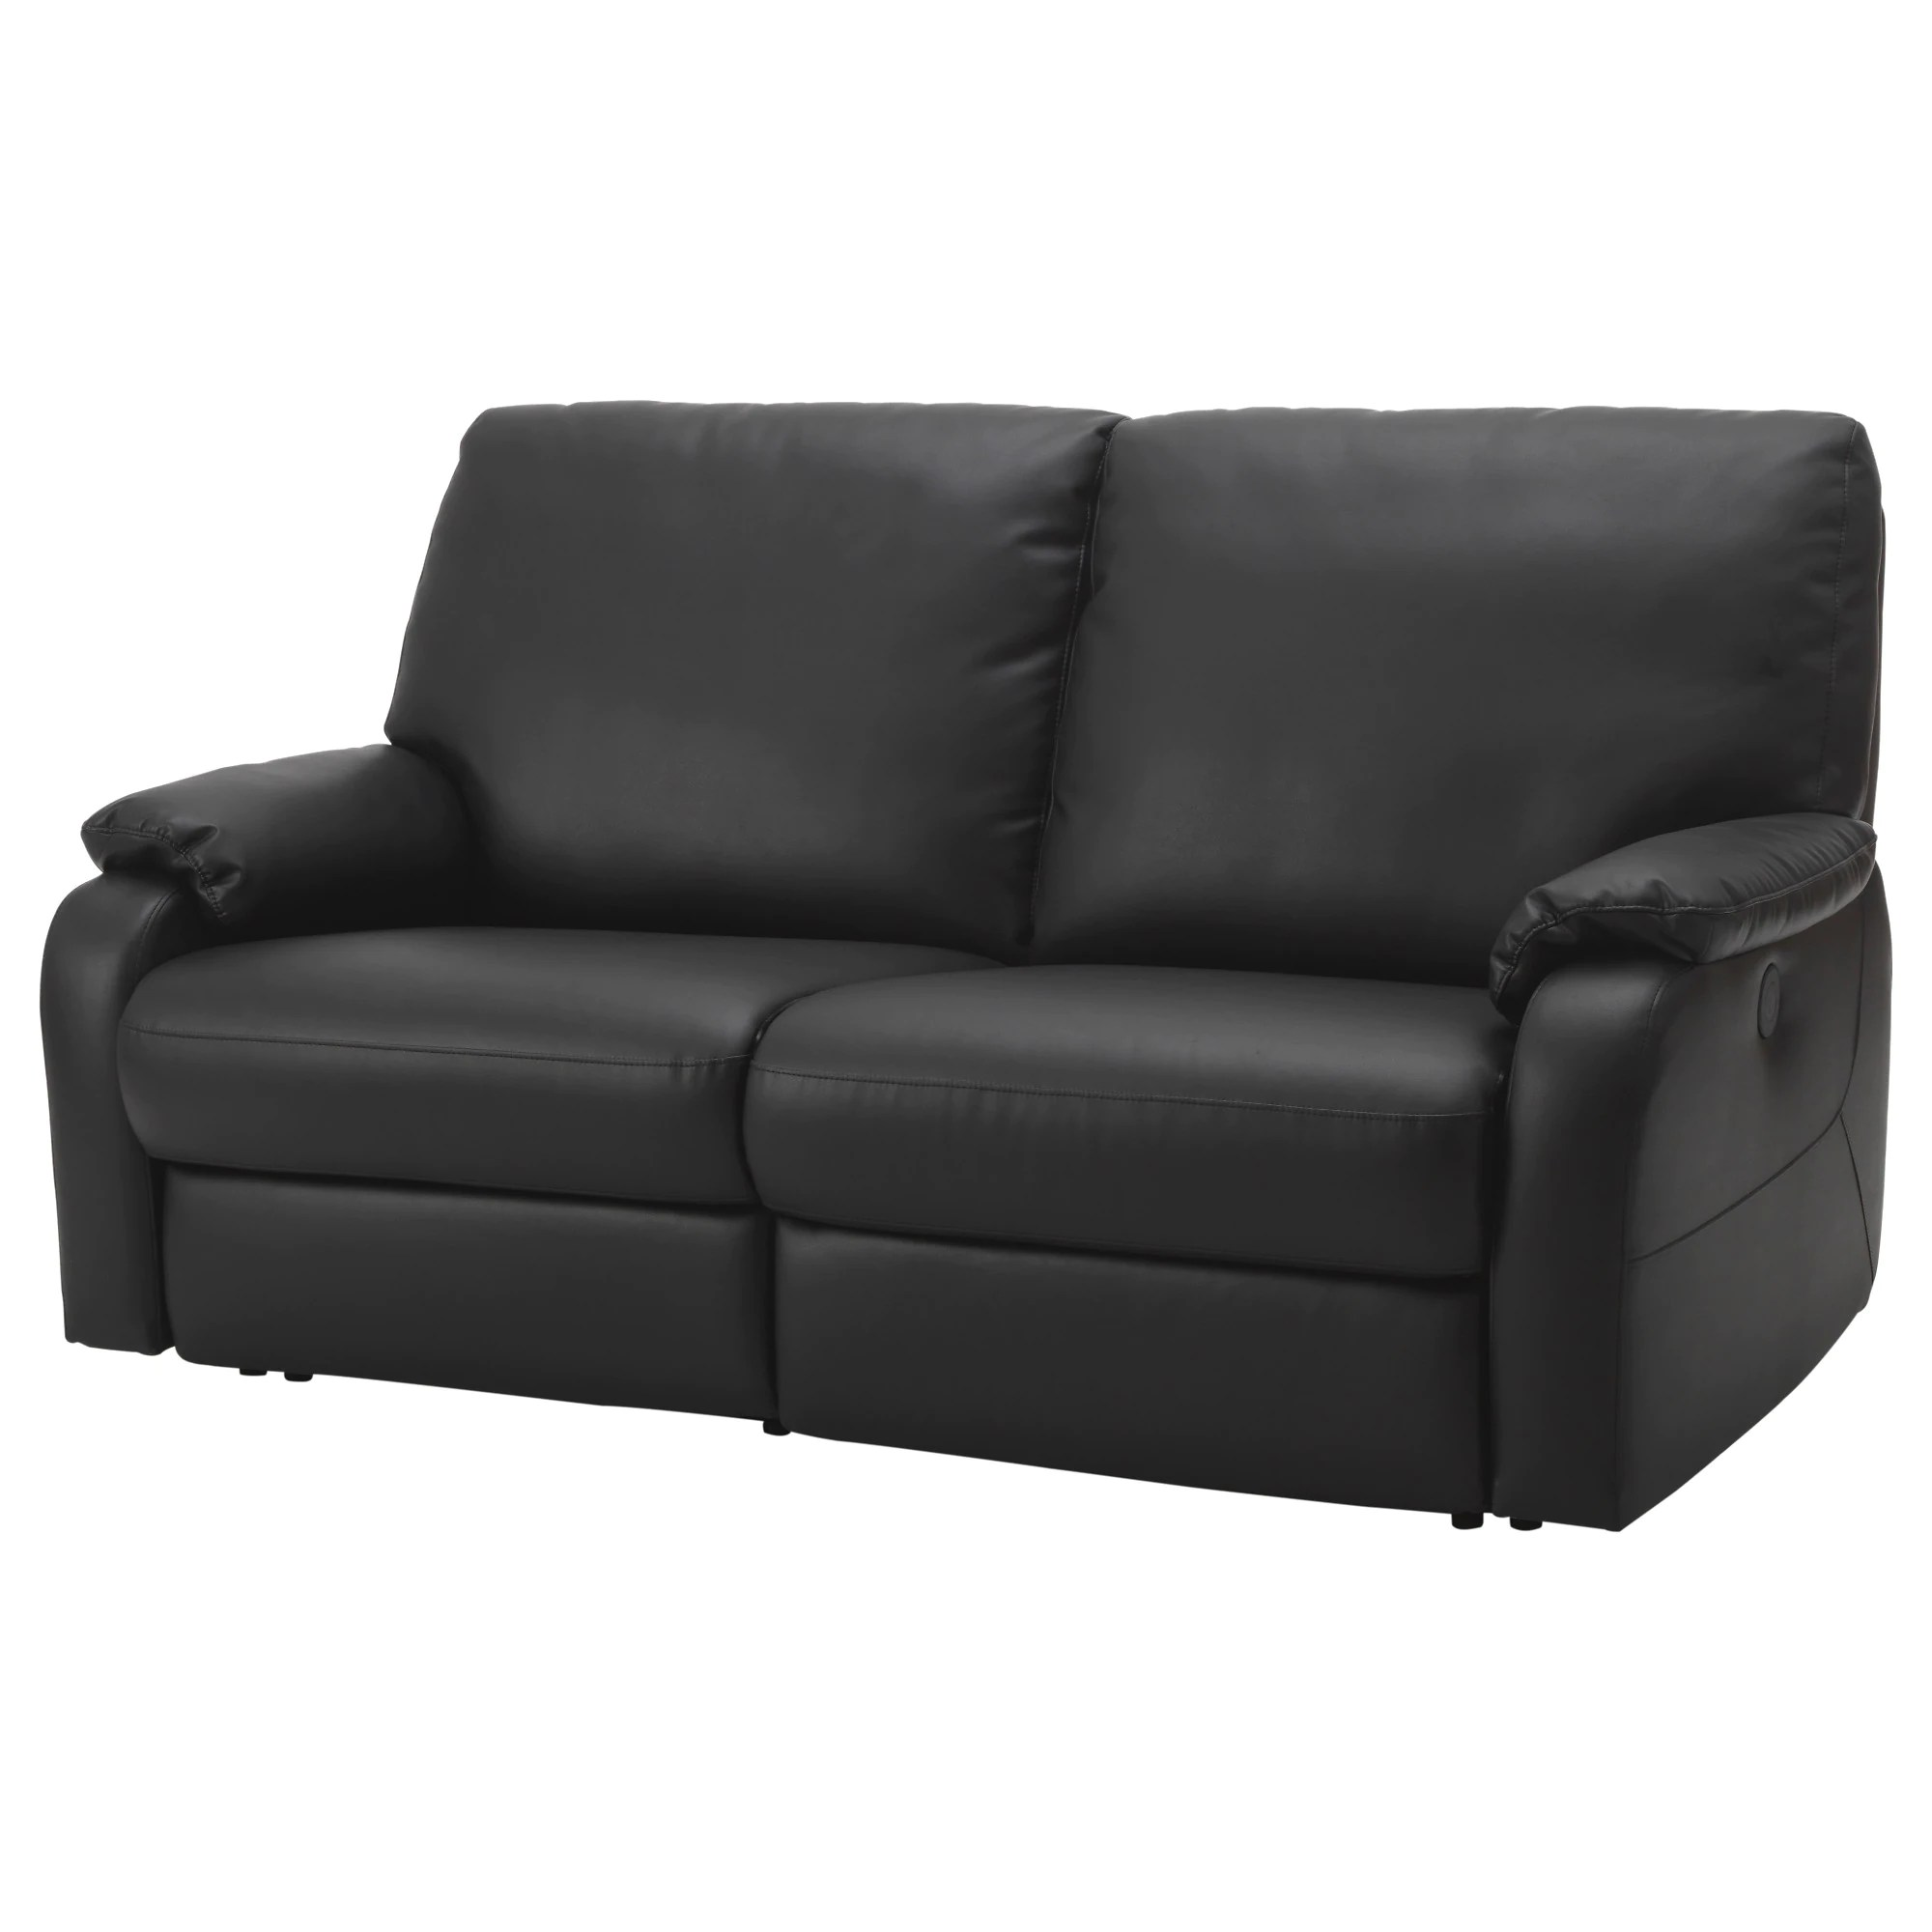 Leather Sofa Chair Ikea Black Leather Sofa Leather Faux Couches Chairs